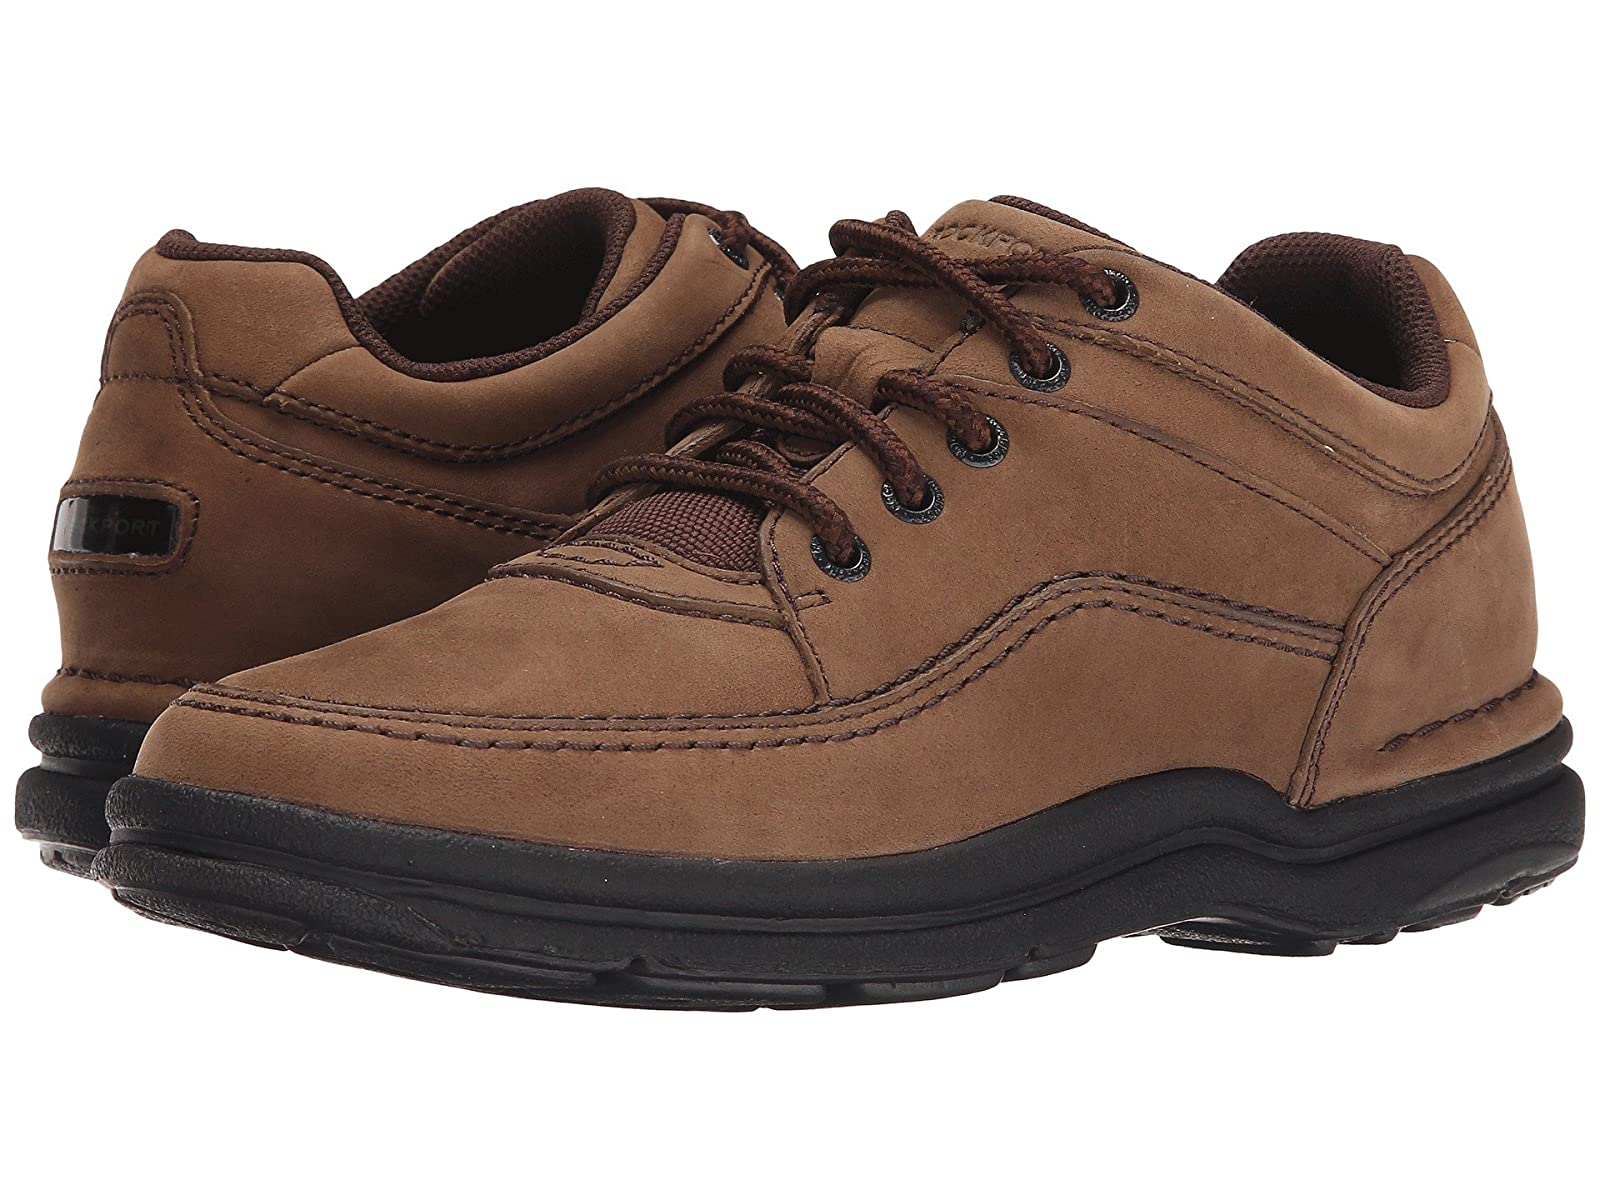 Men's/Women's:Rockport World Tour Classic:famous Classic:famous Classic:famous load 9f4315